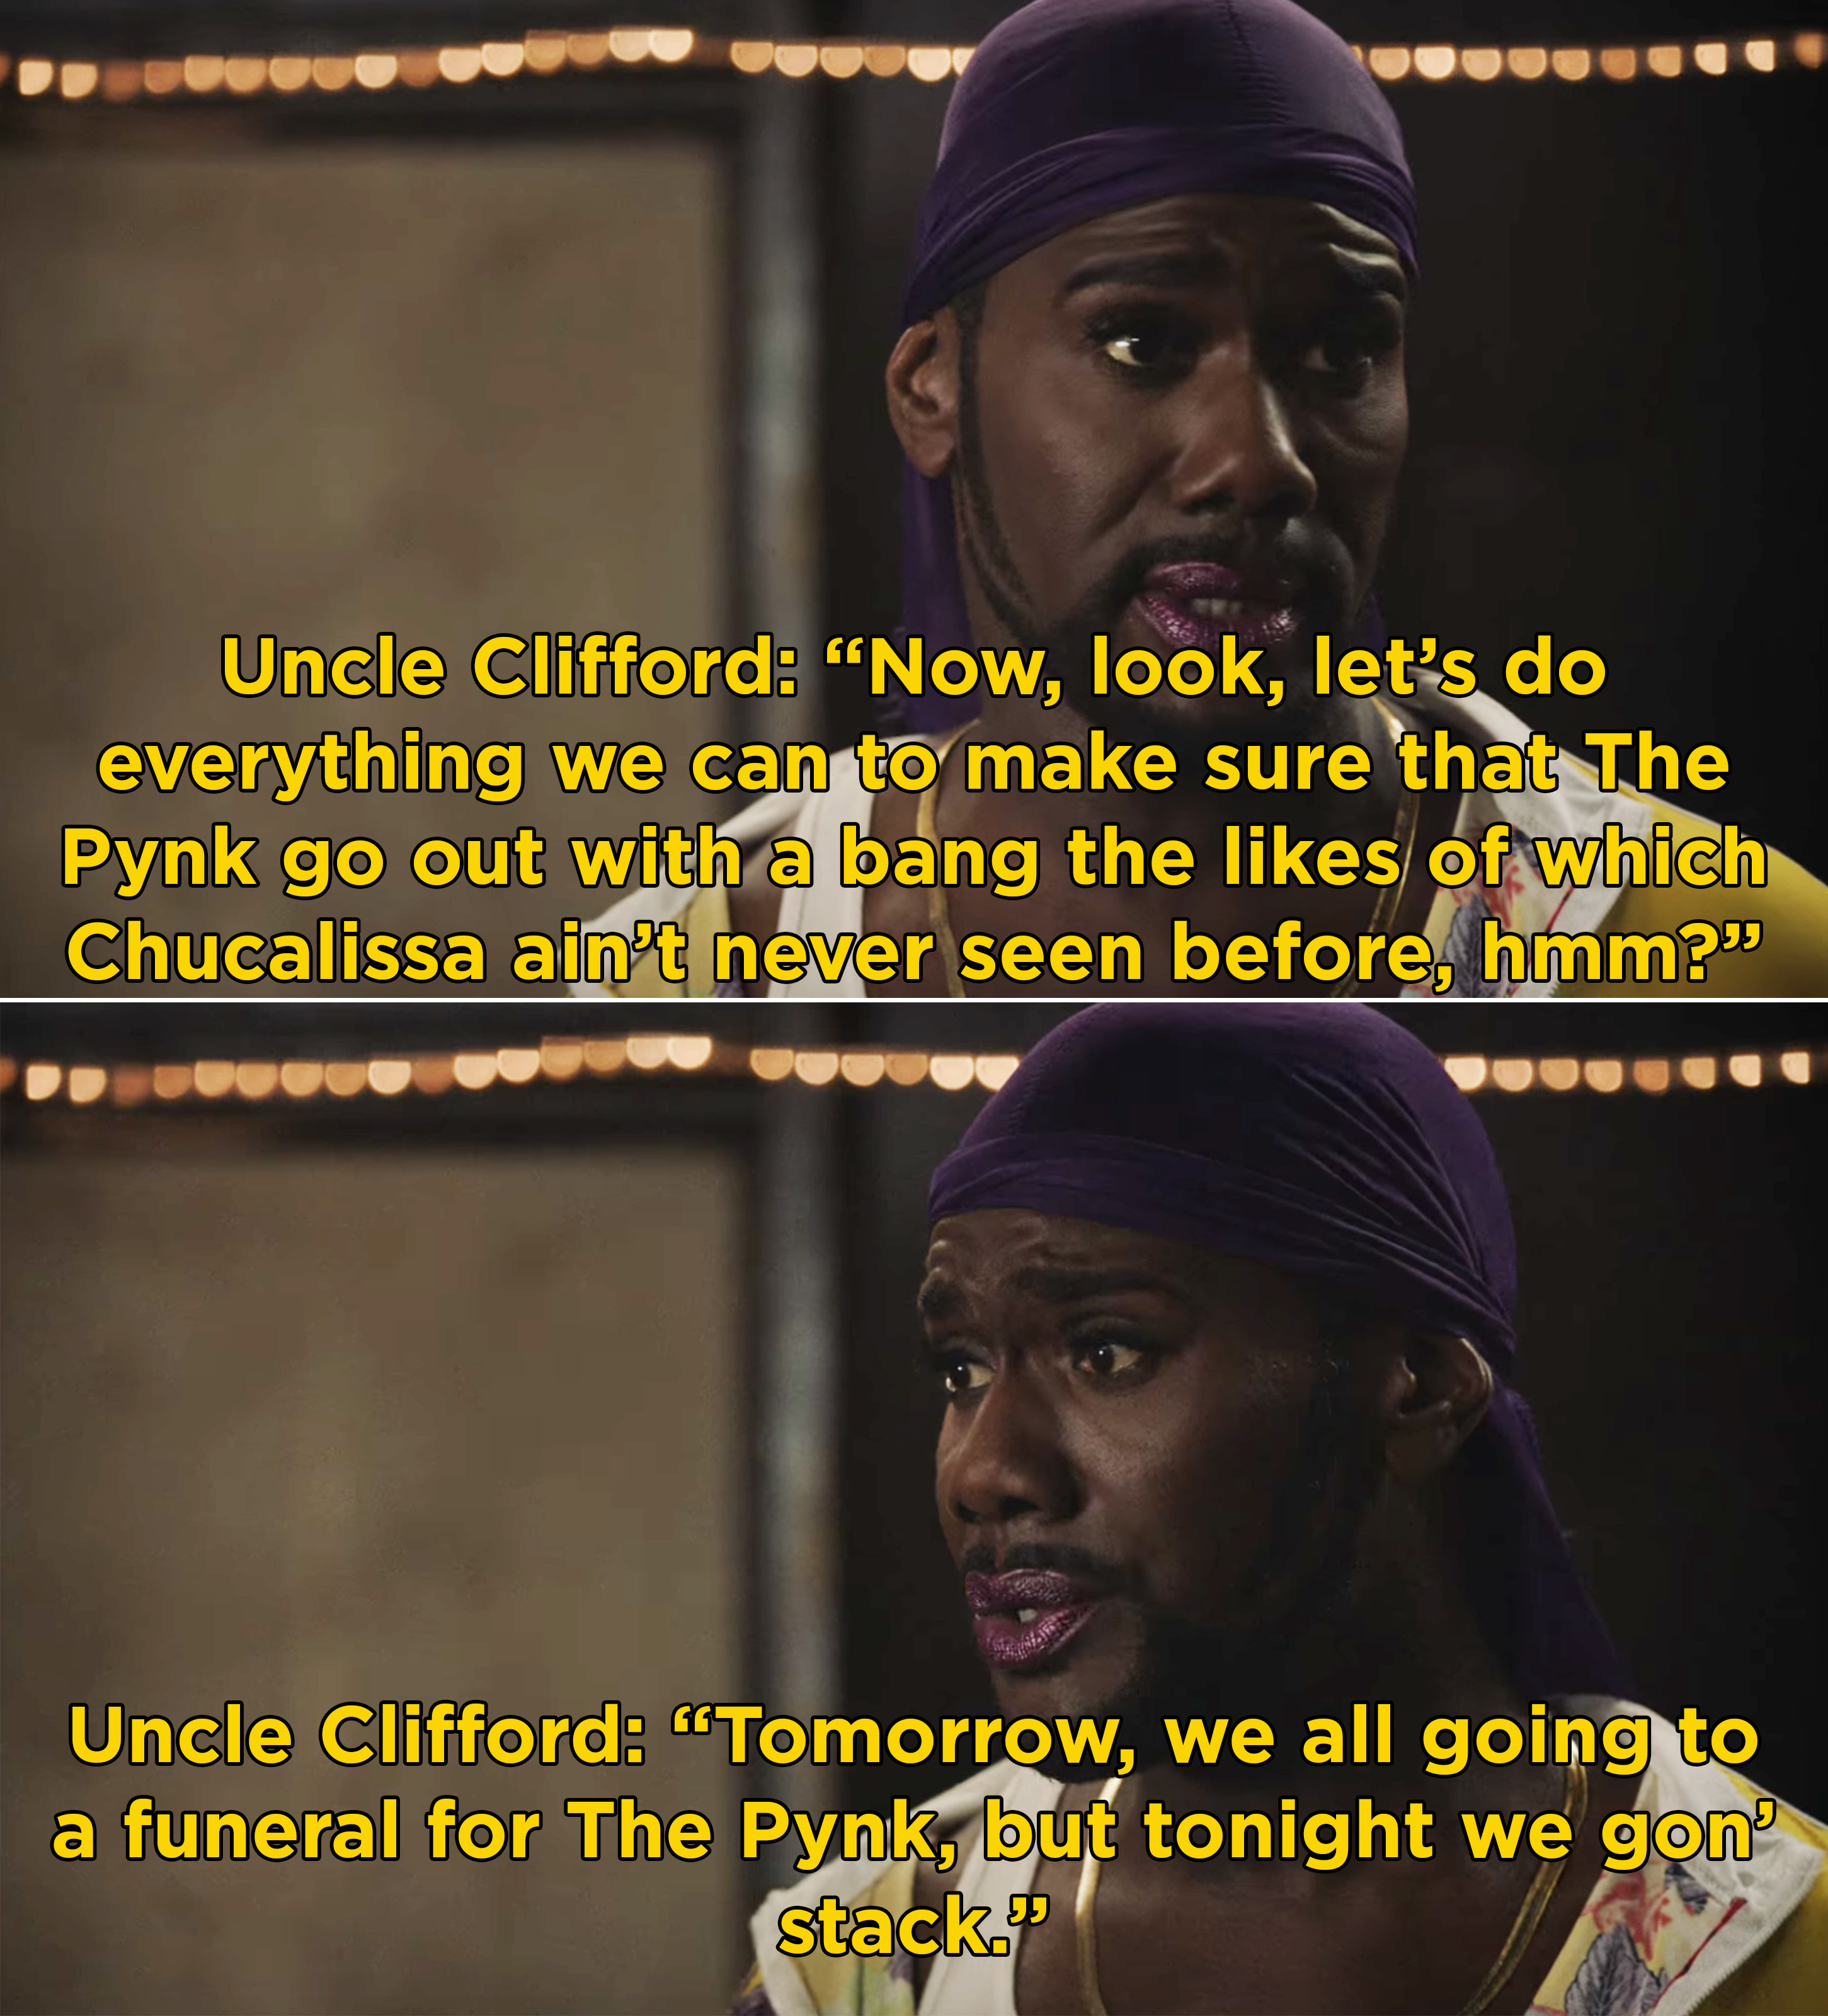 Uncle Clifford telling everyone to make sure The Pynk goes out with a bang